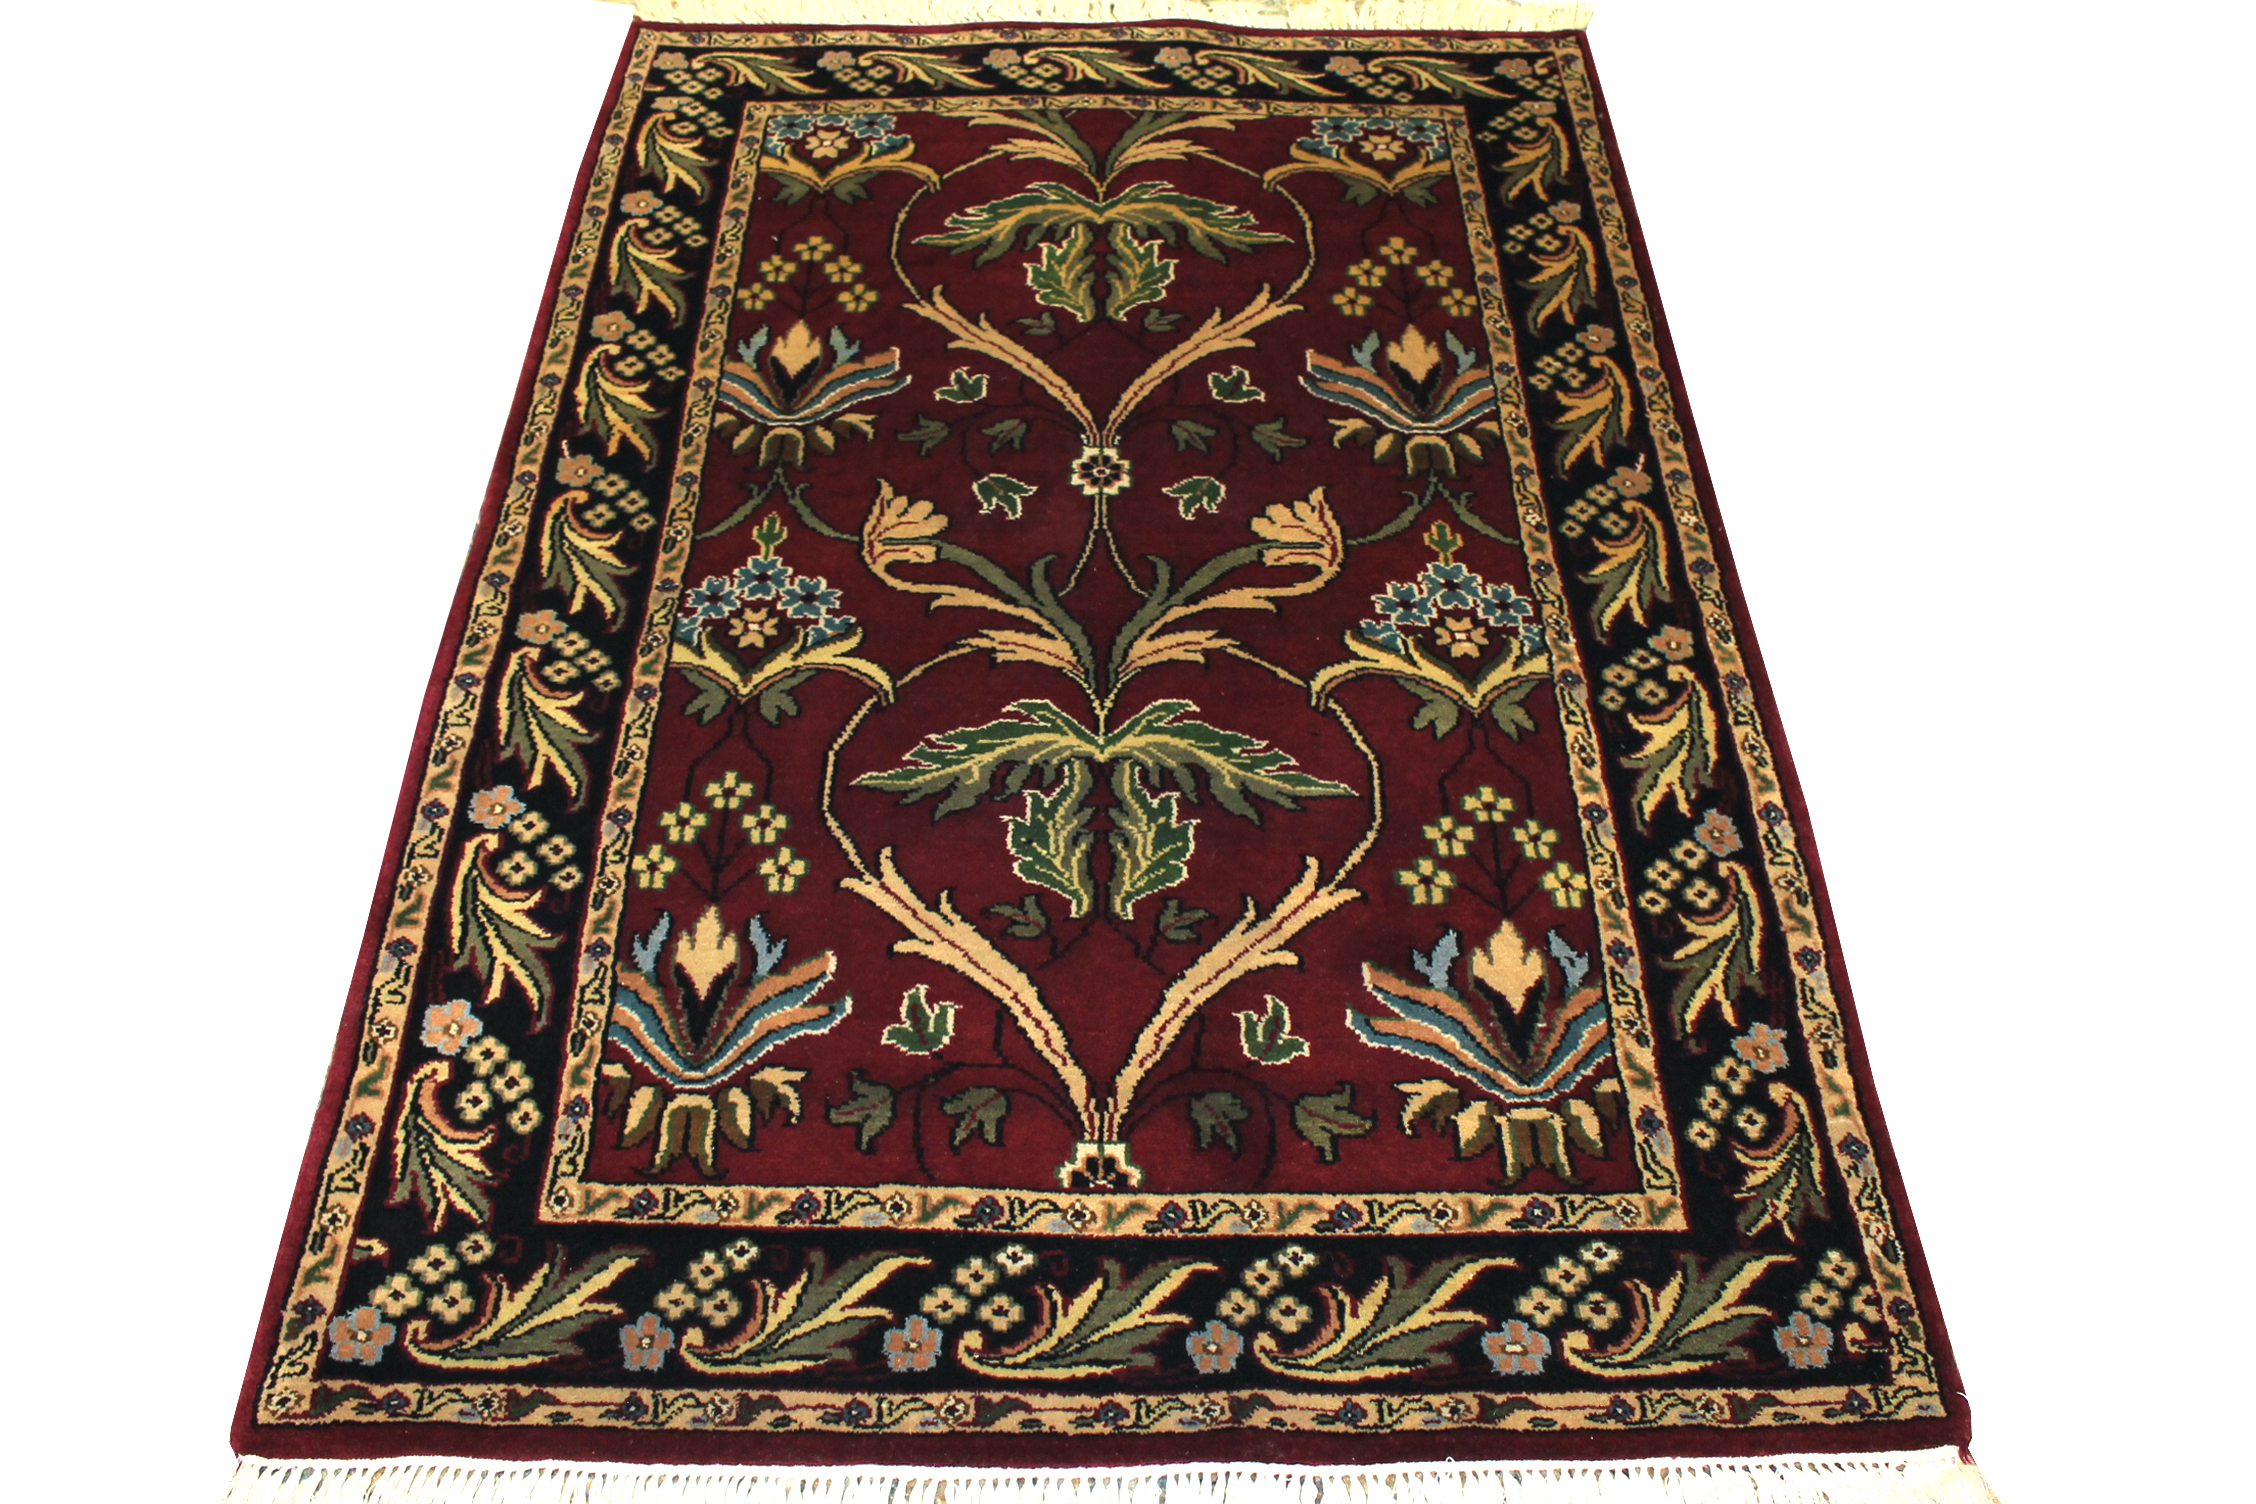 4x6 Traditional Hand Knotted Wool Area Rug - MR0129